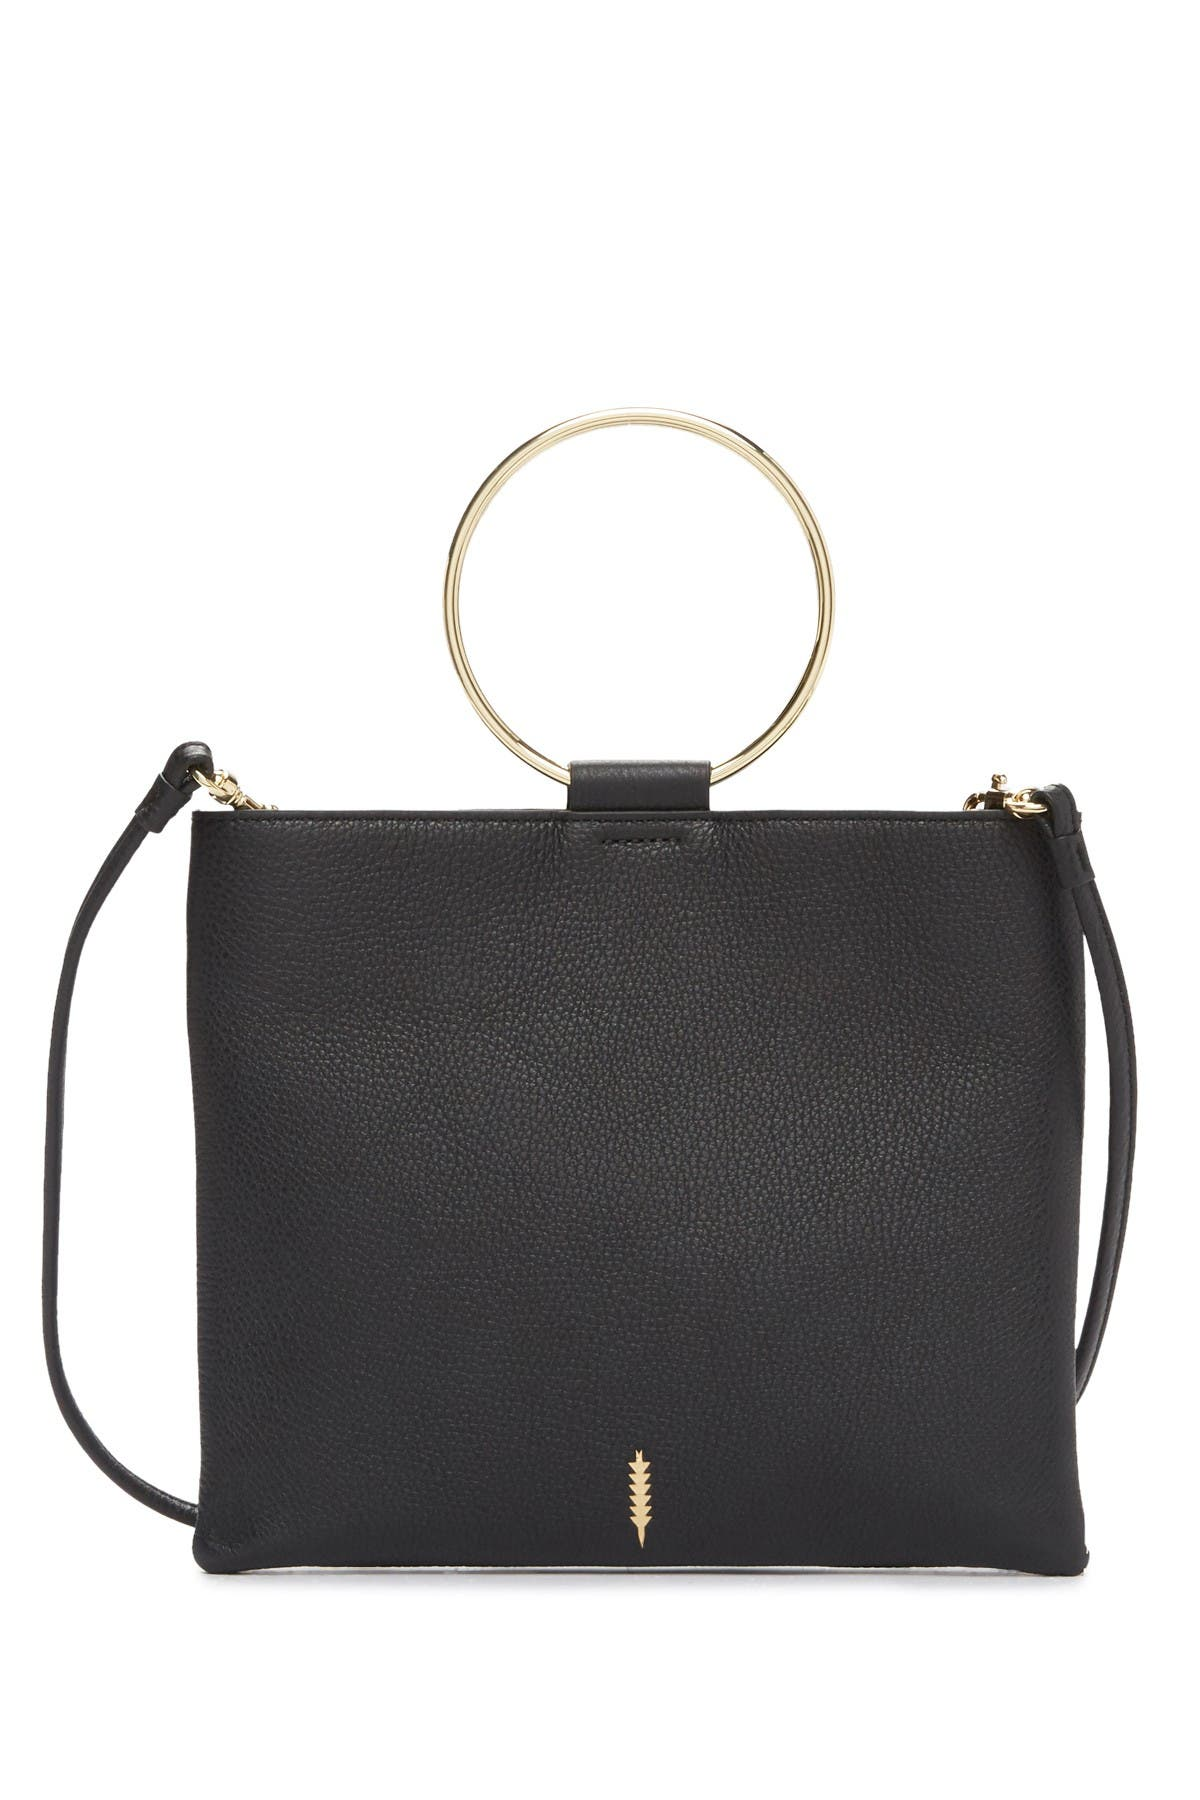 Image of THACKER Le Pouch Leather Shoulder Bag